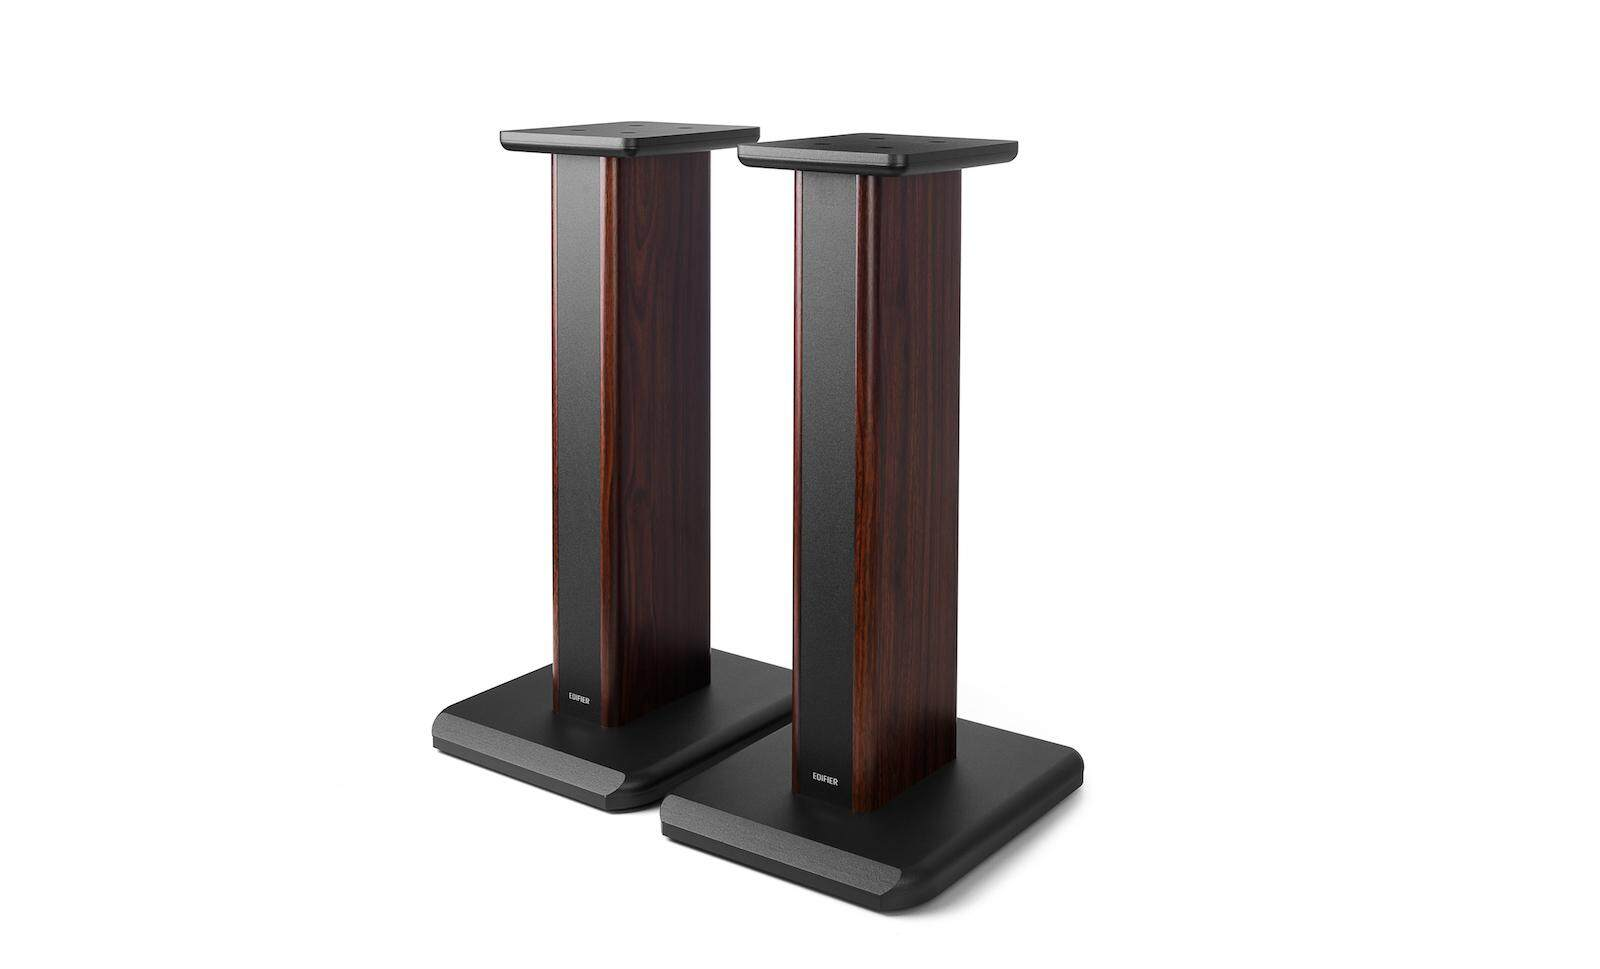 Edifier Ss03 - Speaker Stand For S3000 Pro By Edifier Malaysia.